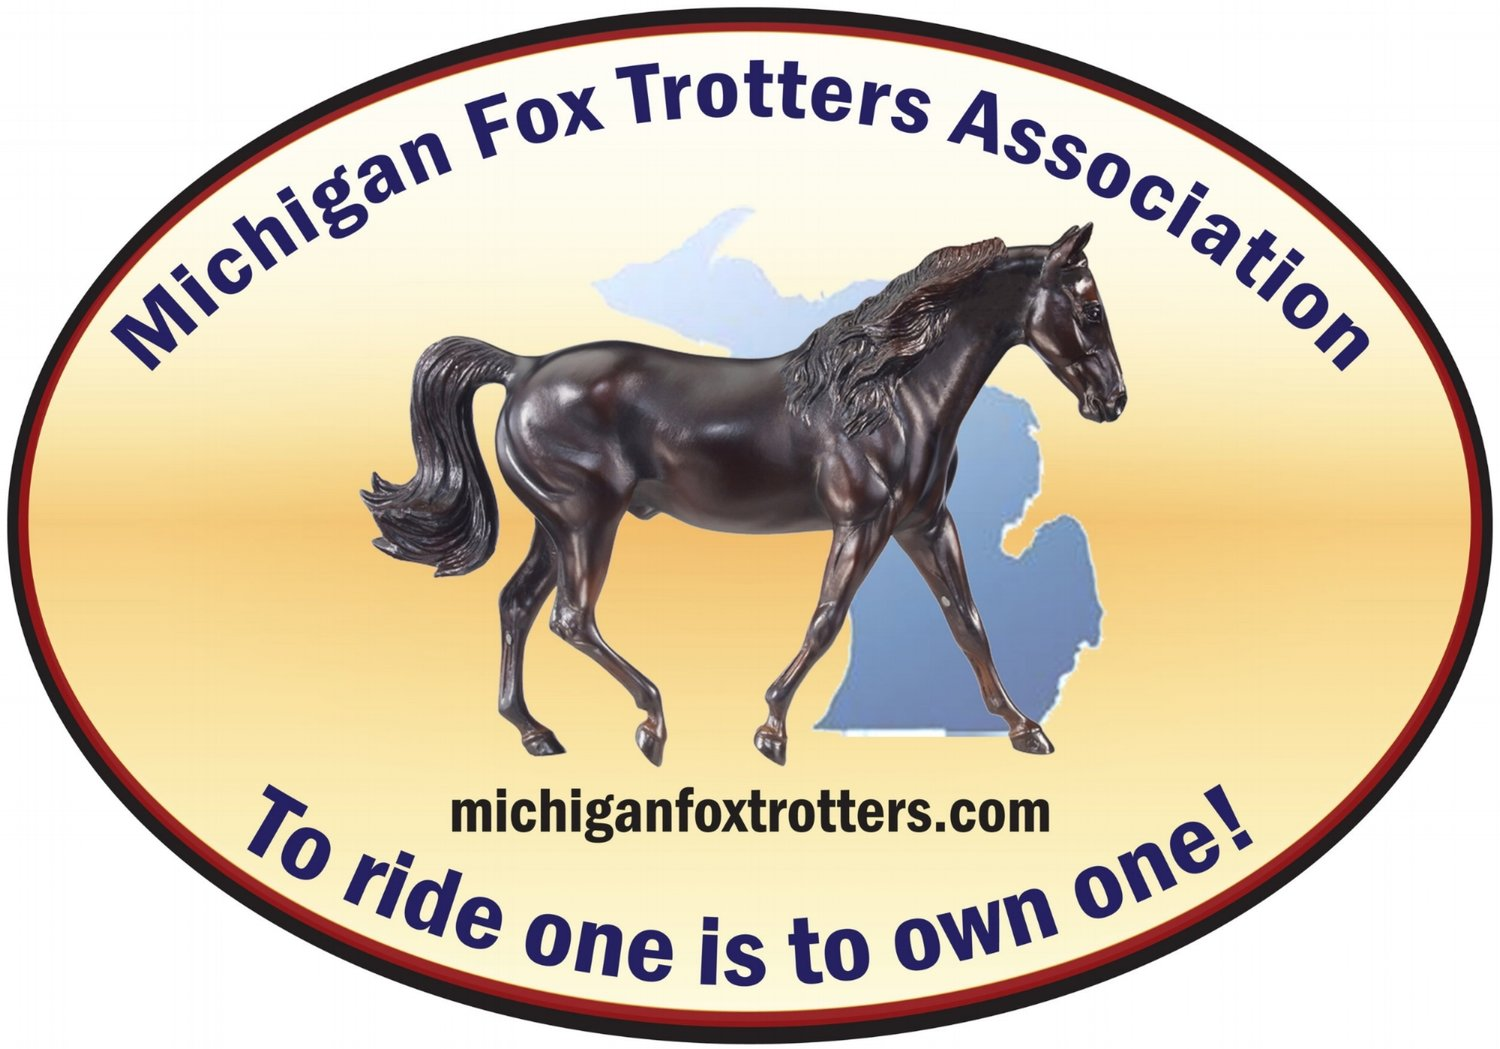 Michigan Fox Trotter Association